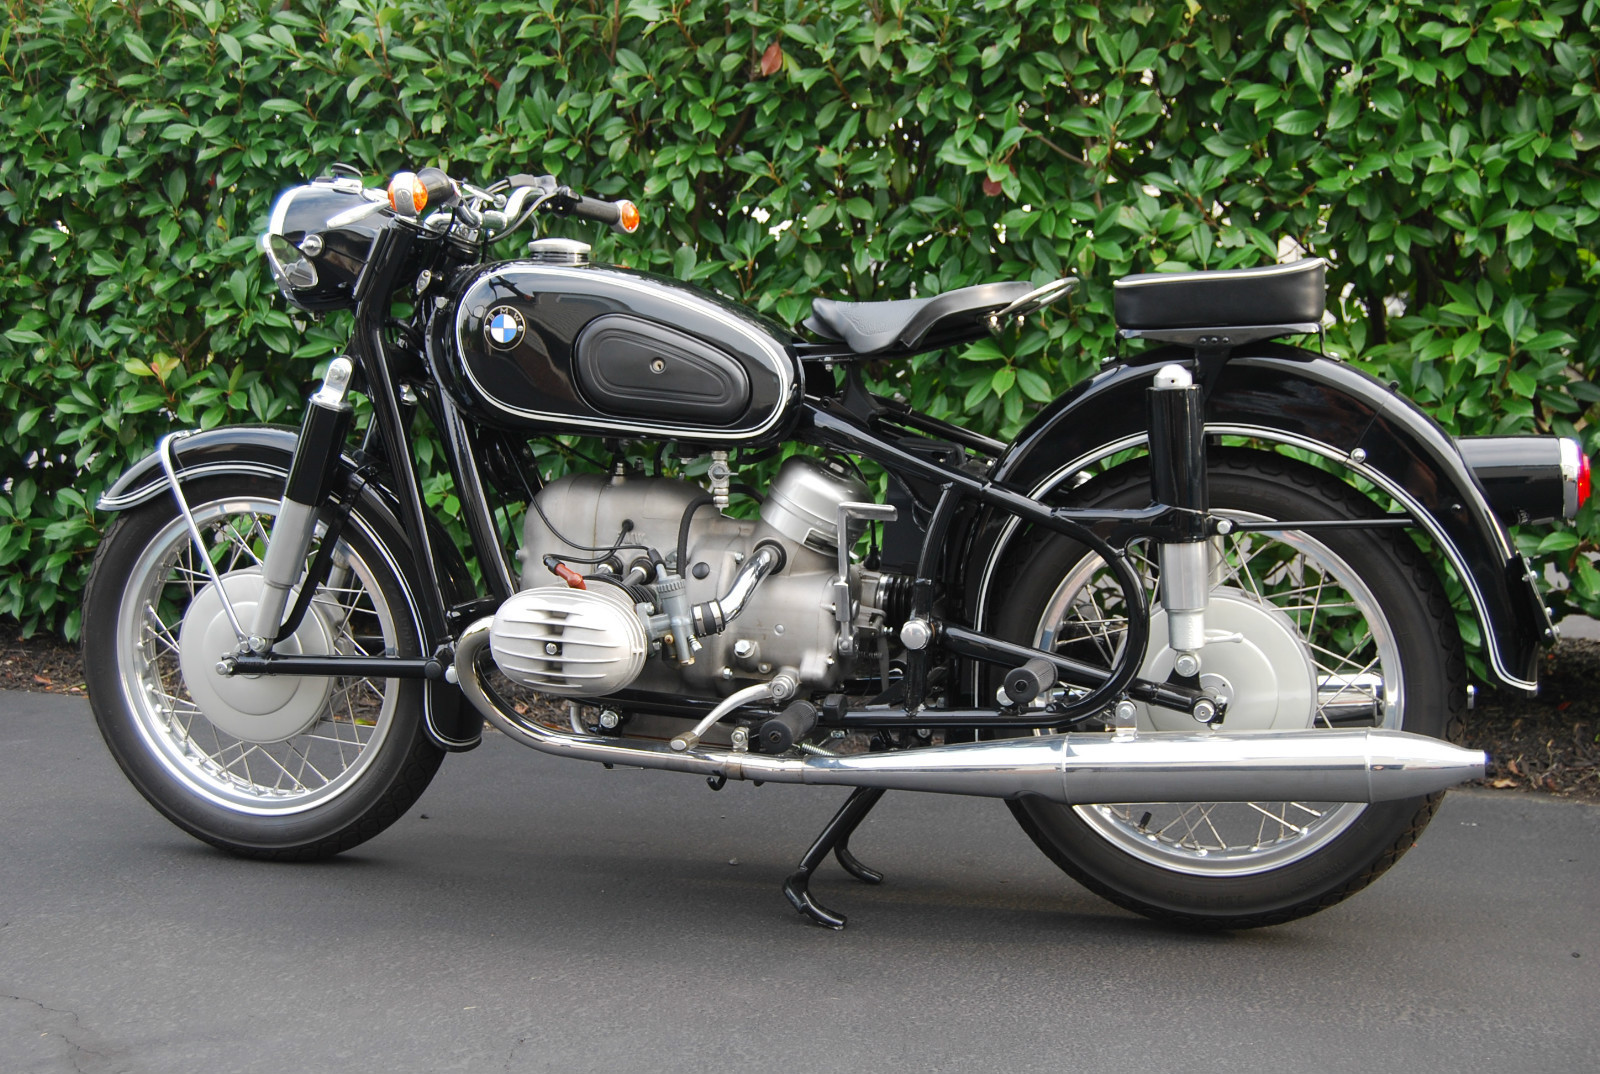 Restored Bmw R60 2 1962 Photographs At Classic Bikes Restored Bikes Restored